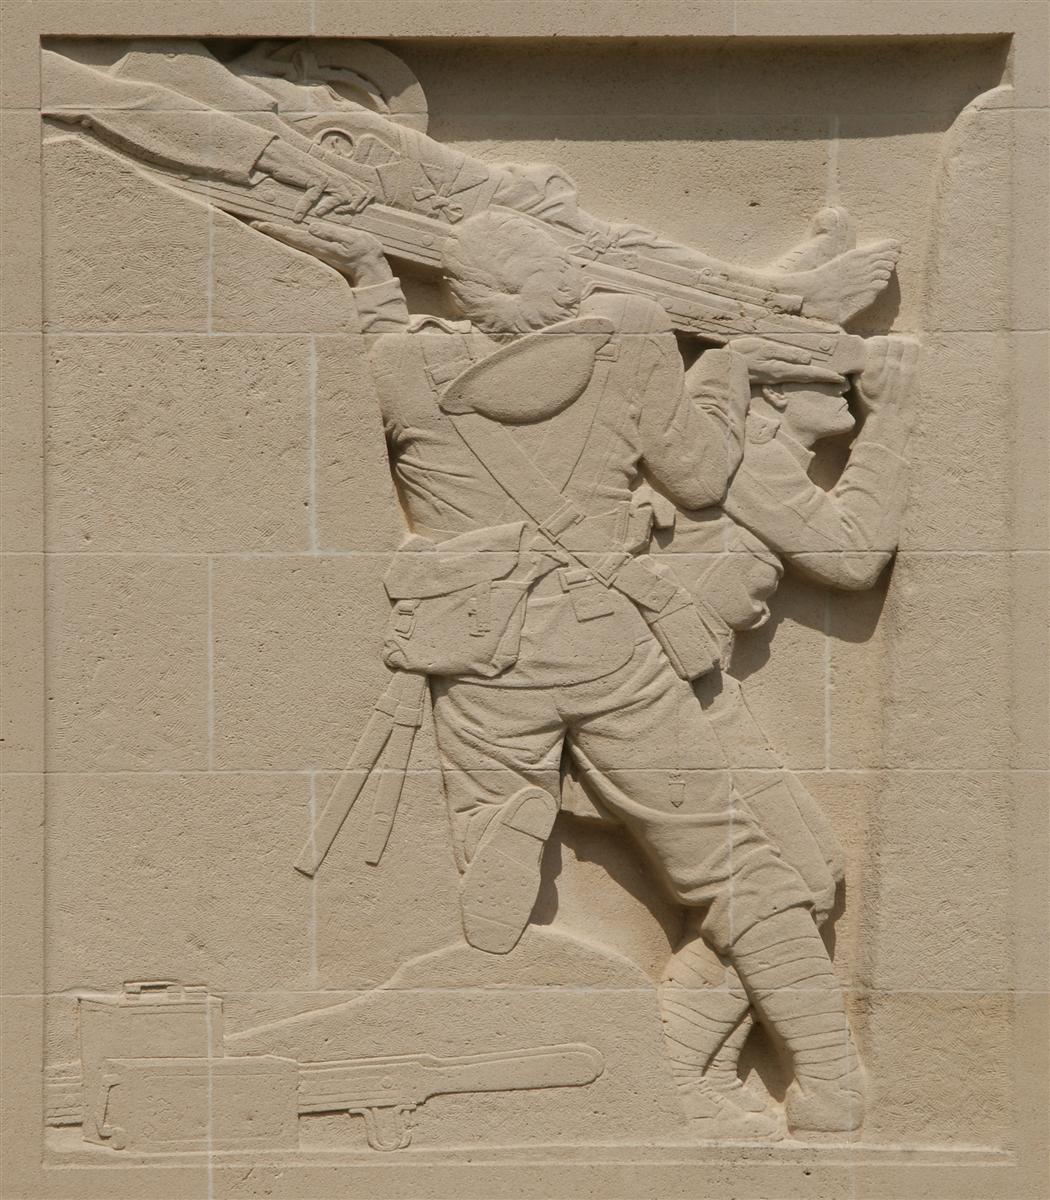 Bas-relief on Cambrai Memorial